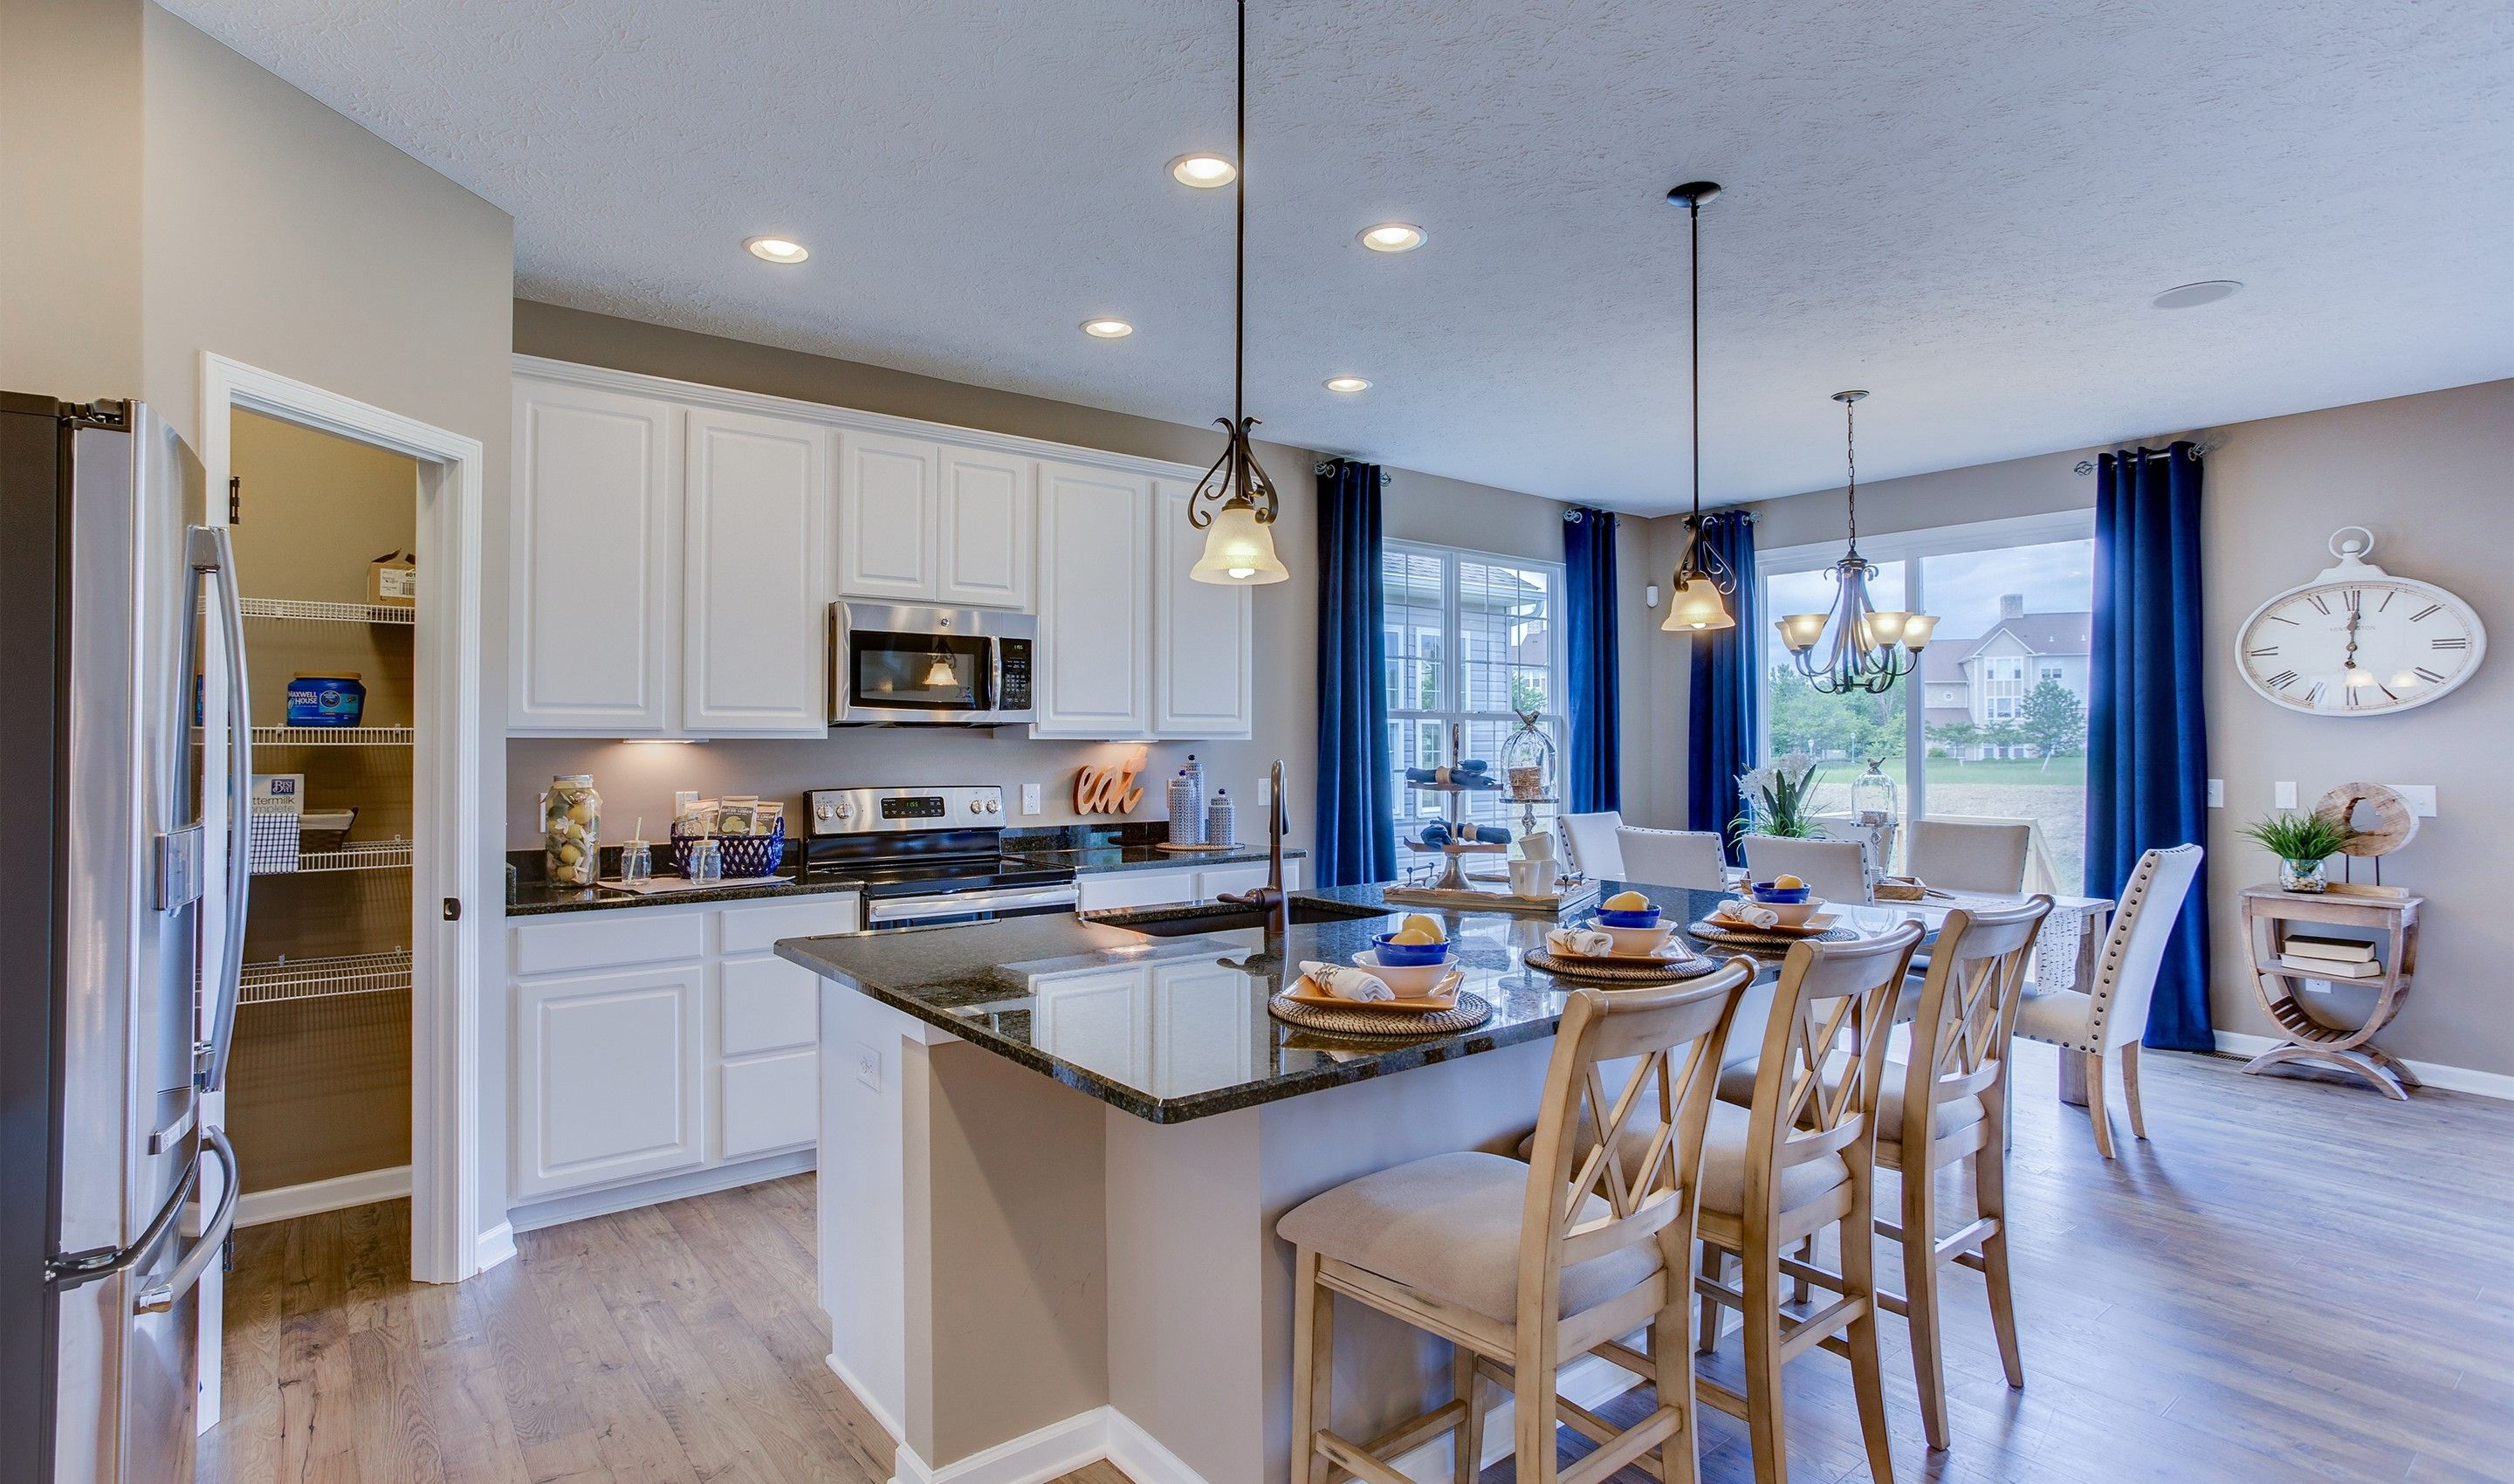 Kitchen featured in the Dorchester Loft By K. Hovnanian's® Four Seasons in Cleveland, OH